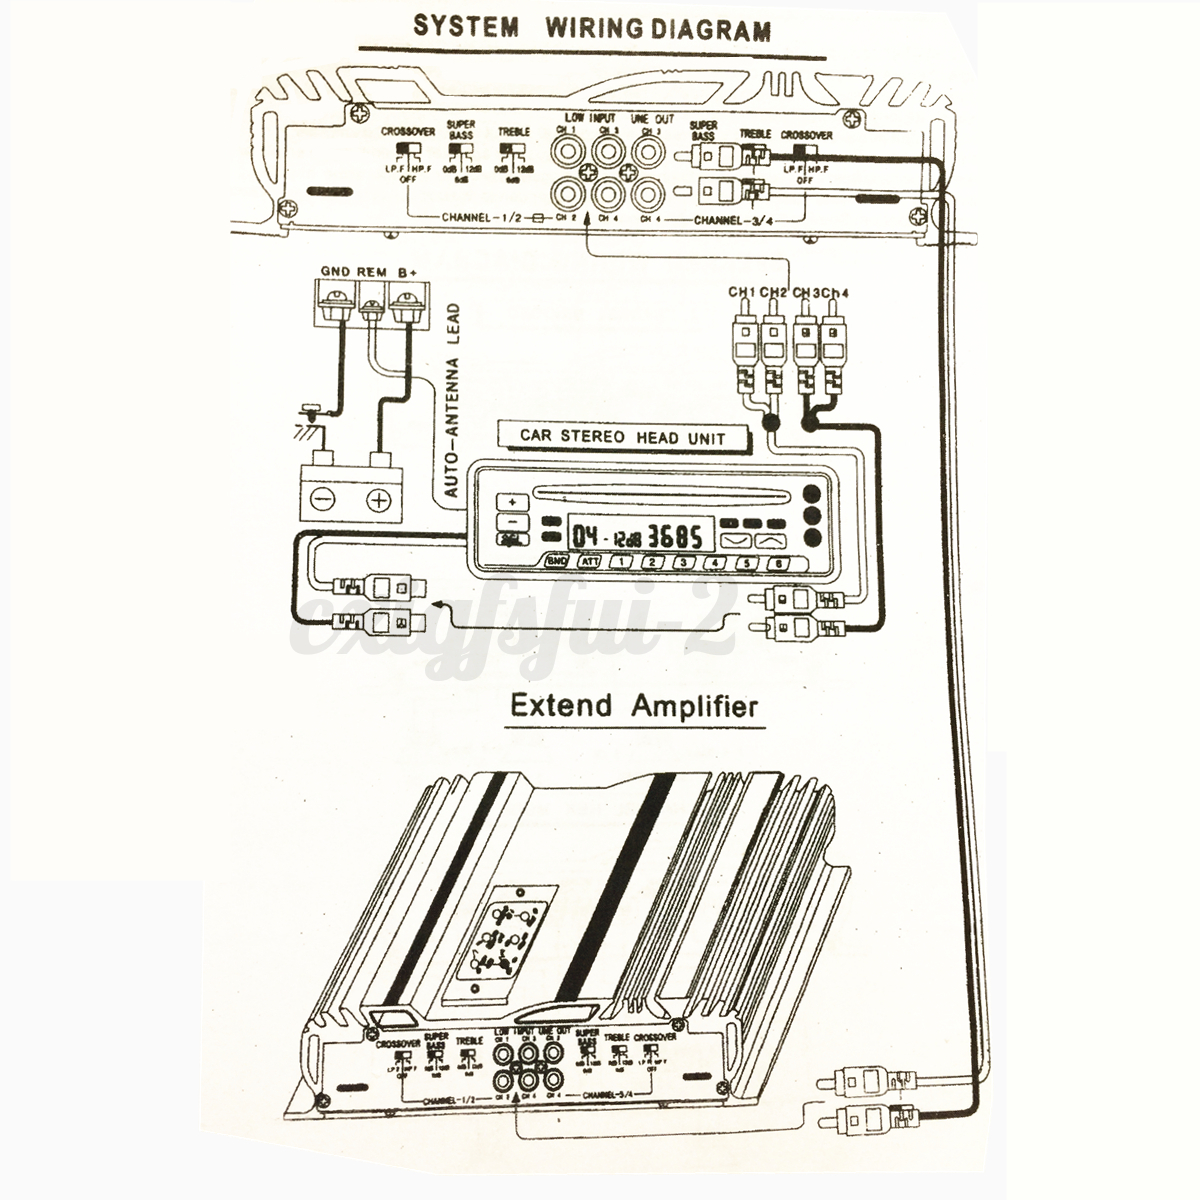 Channel Amp Wiring Diagram Bridged on mitsubishi infinity radio, gm bose, connecting 6 speakers 4 channel, infinity gold, nissan bose, for car,